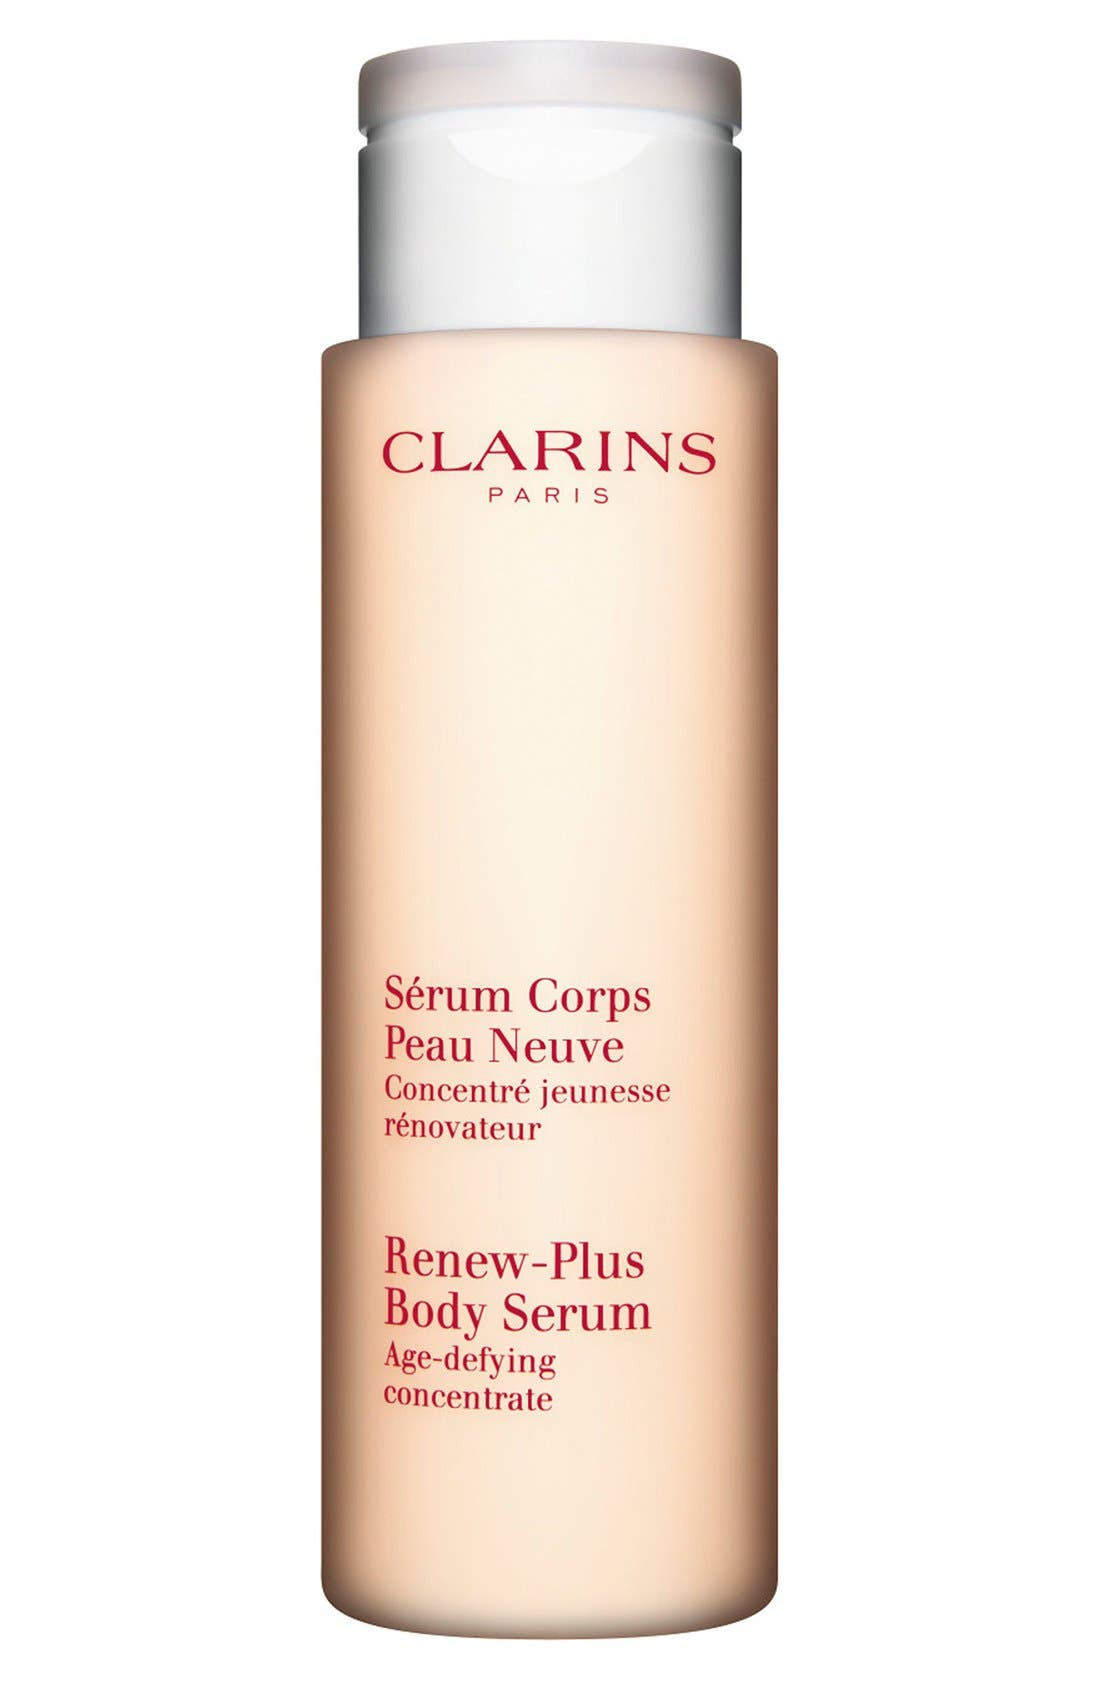 Clarins 'Renew-Plus' Body Serum